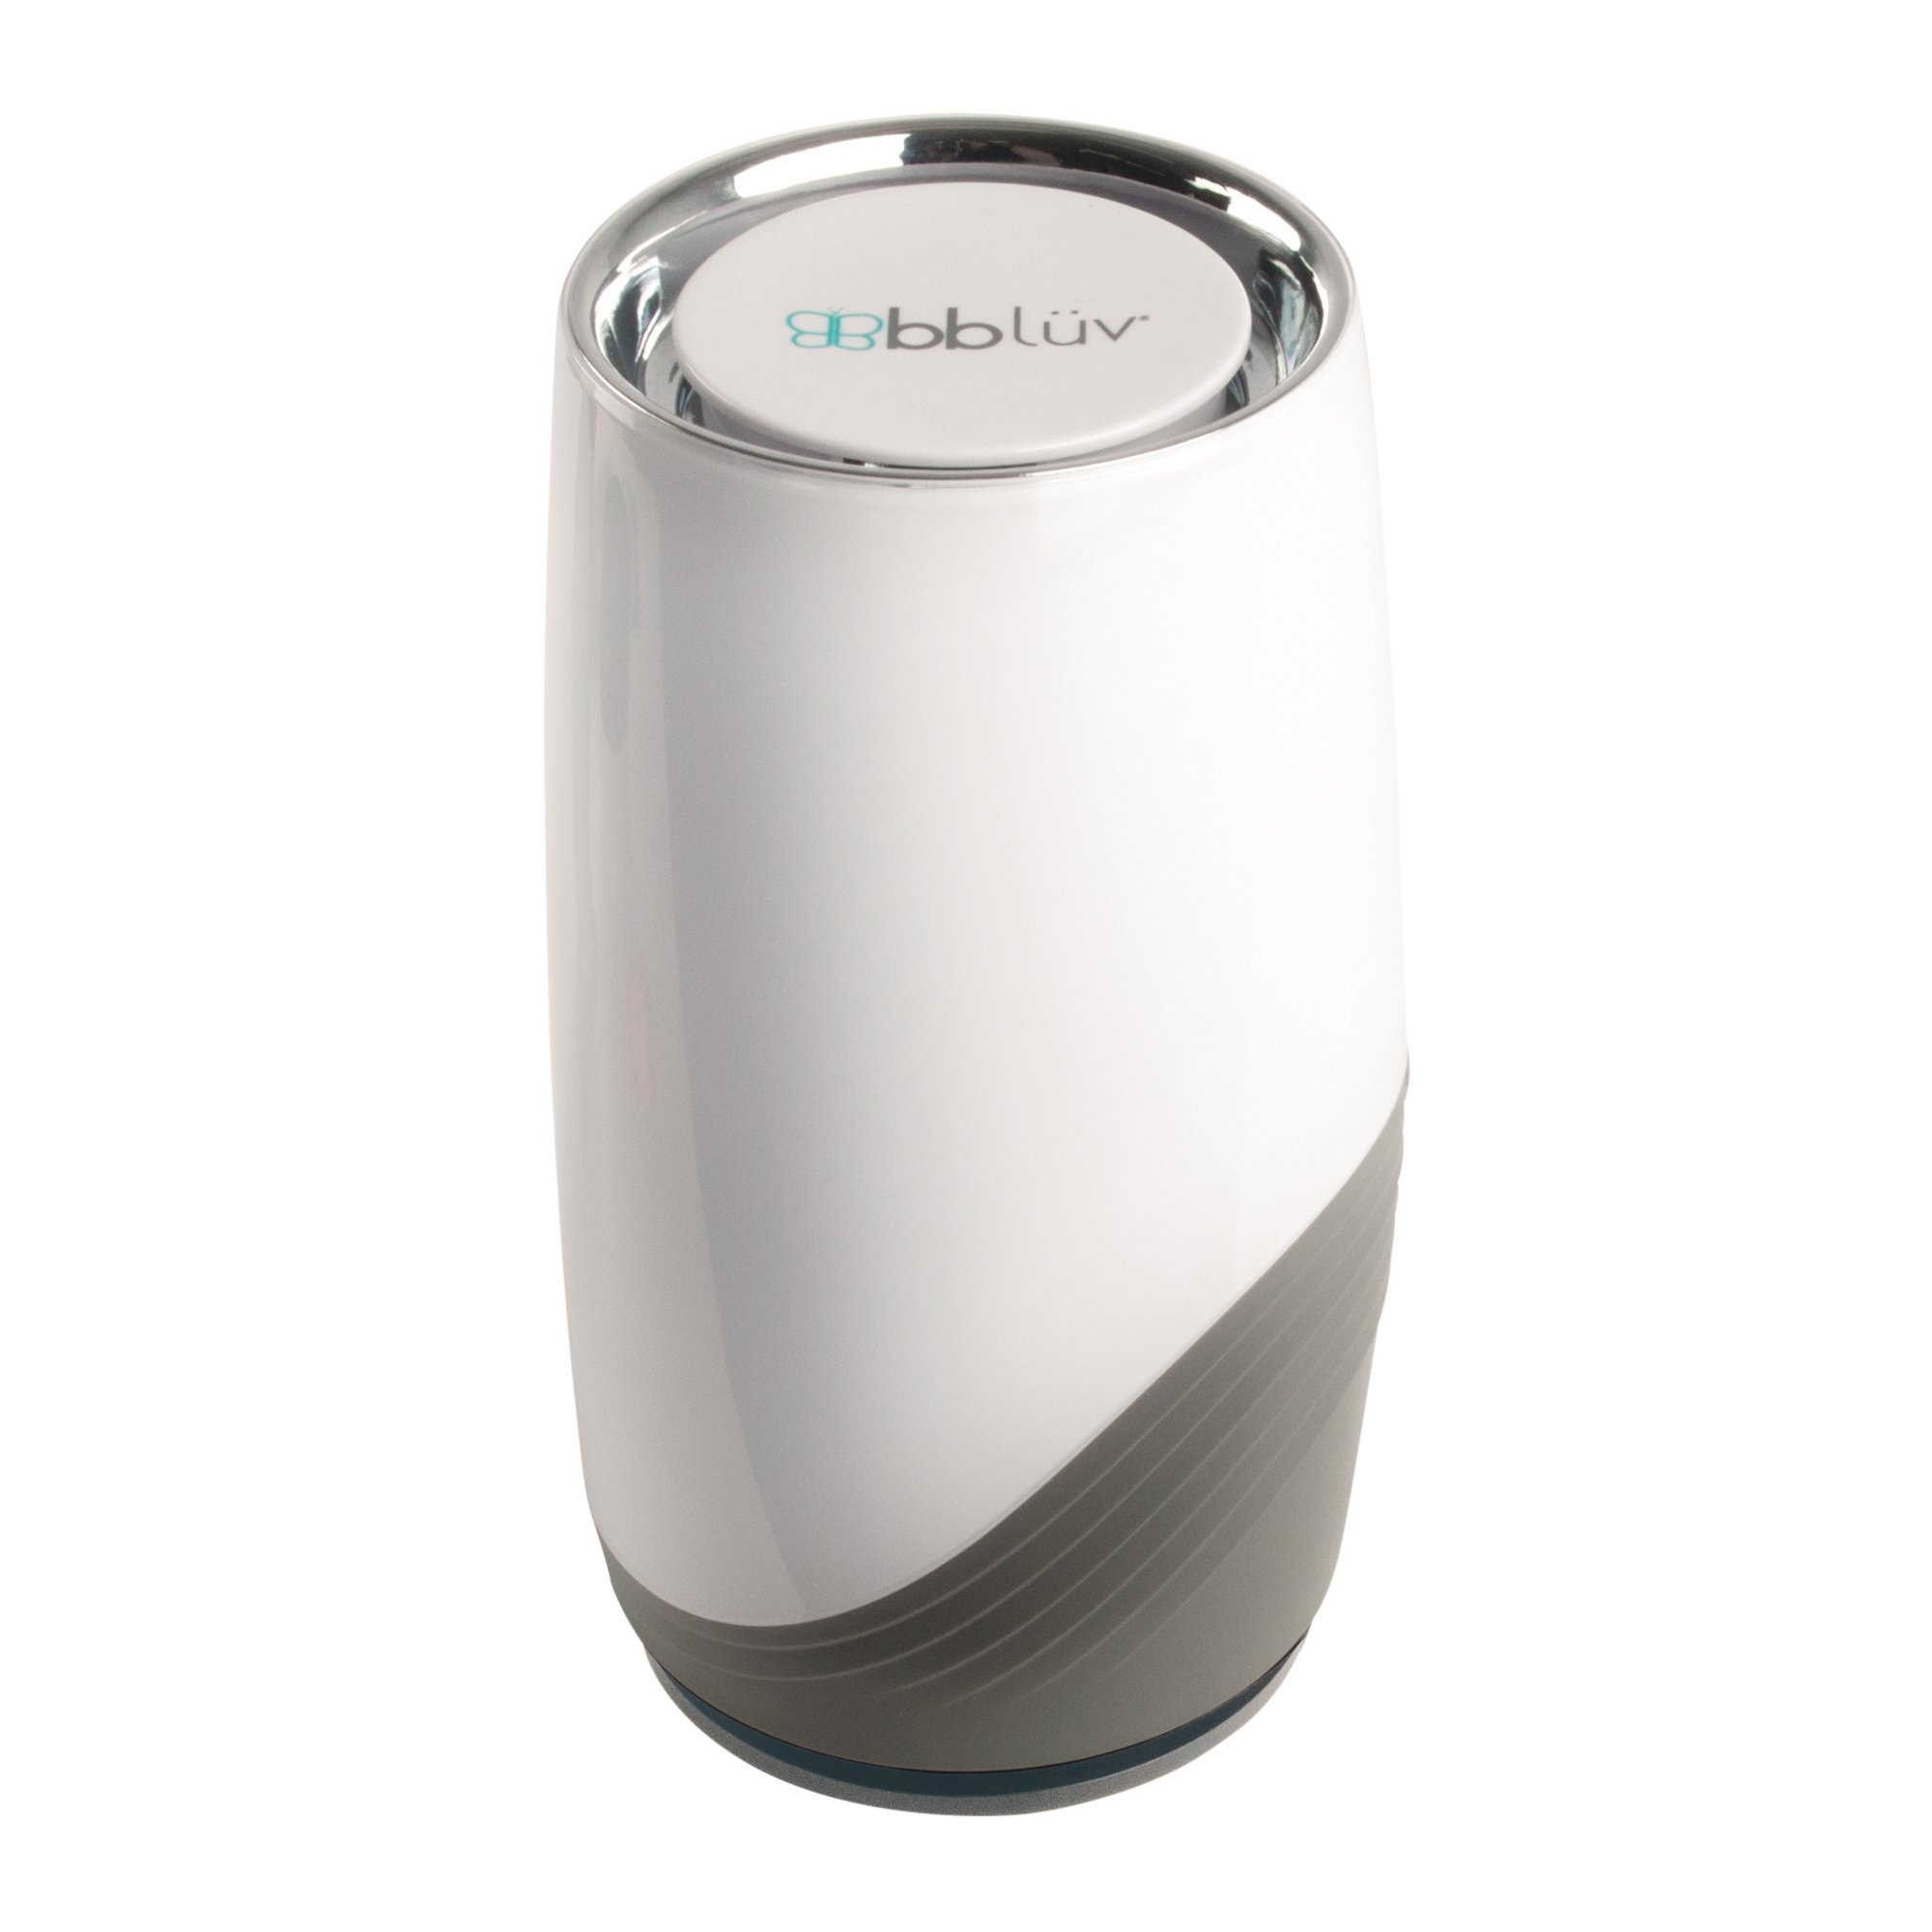 bblüv Püre - 3 in 1 HEPA Air Purifier for baby and children